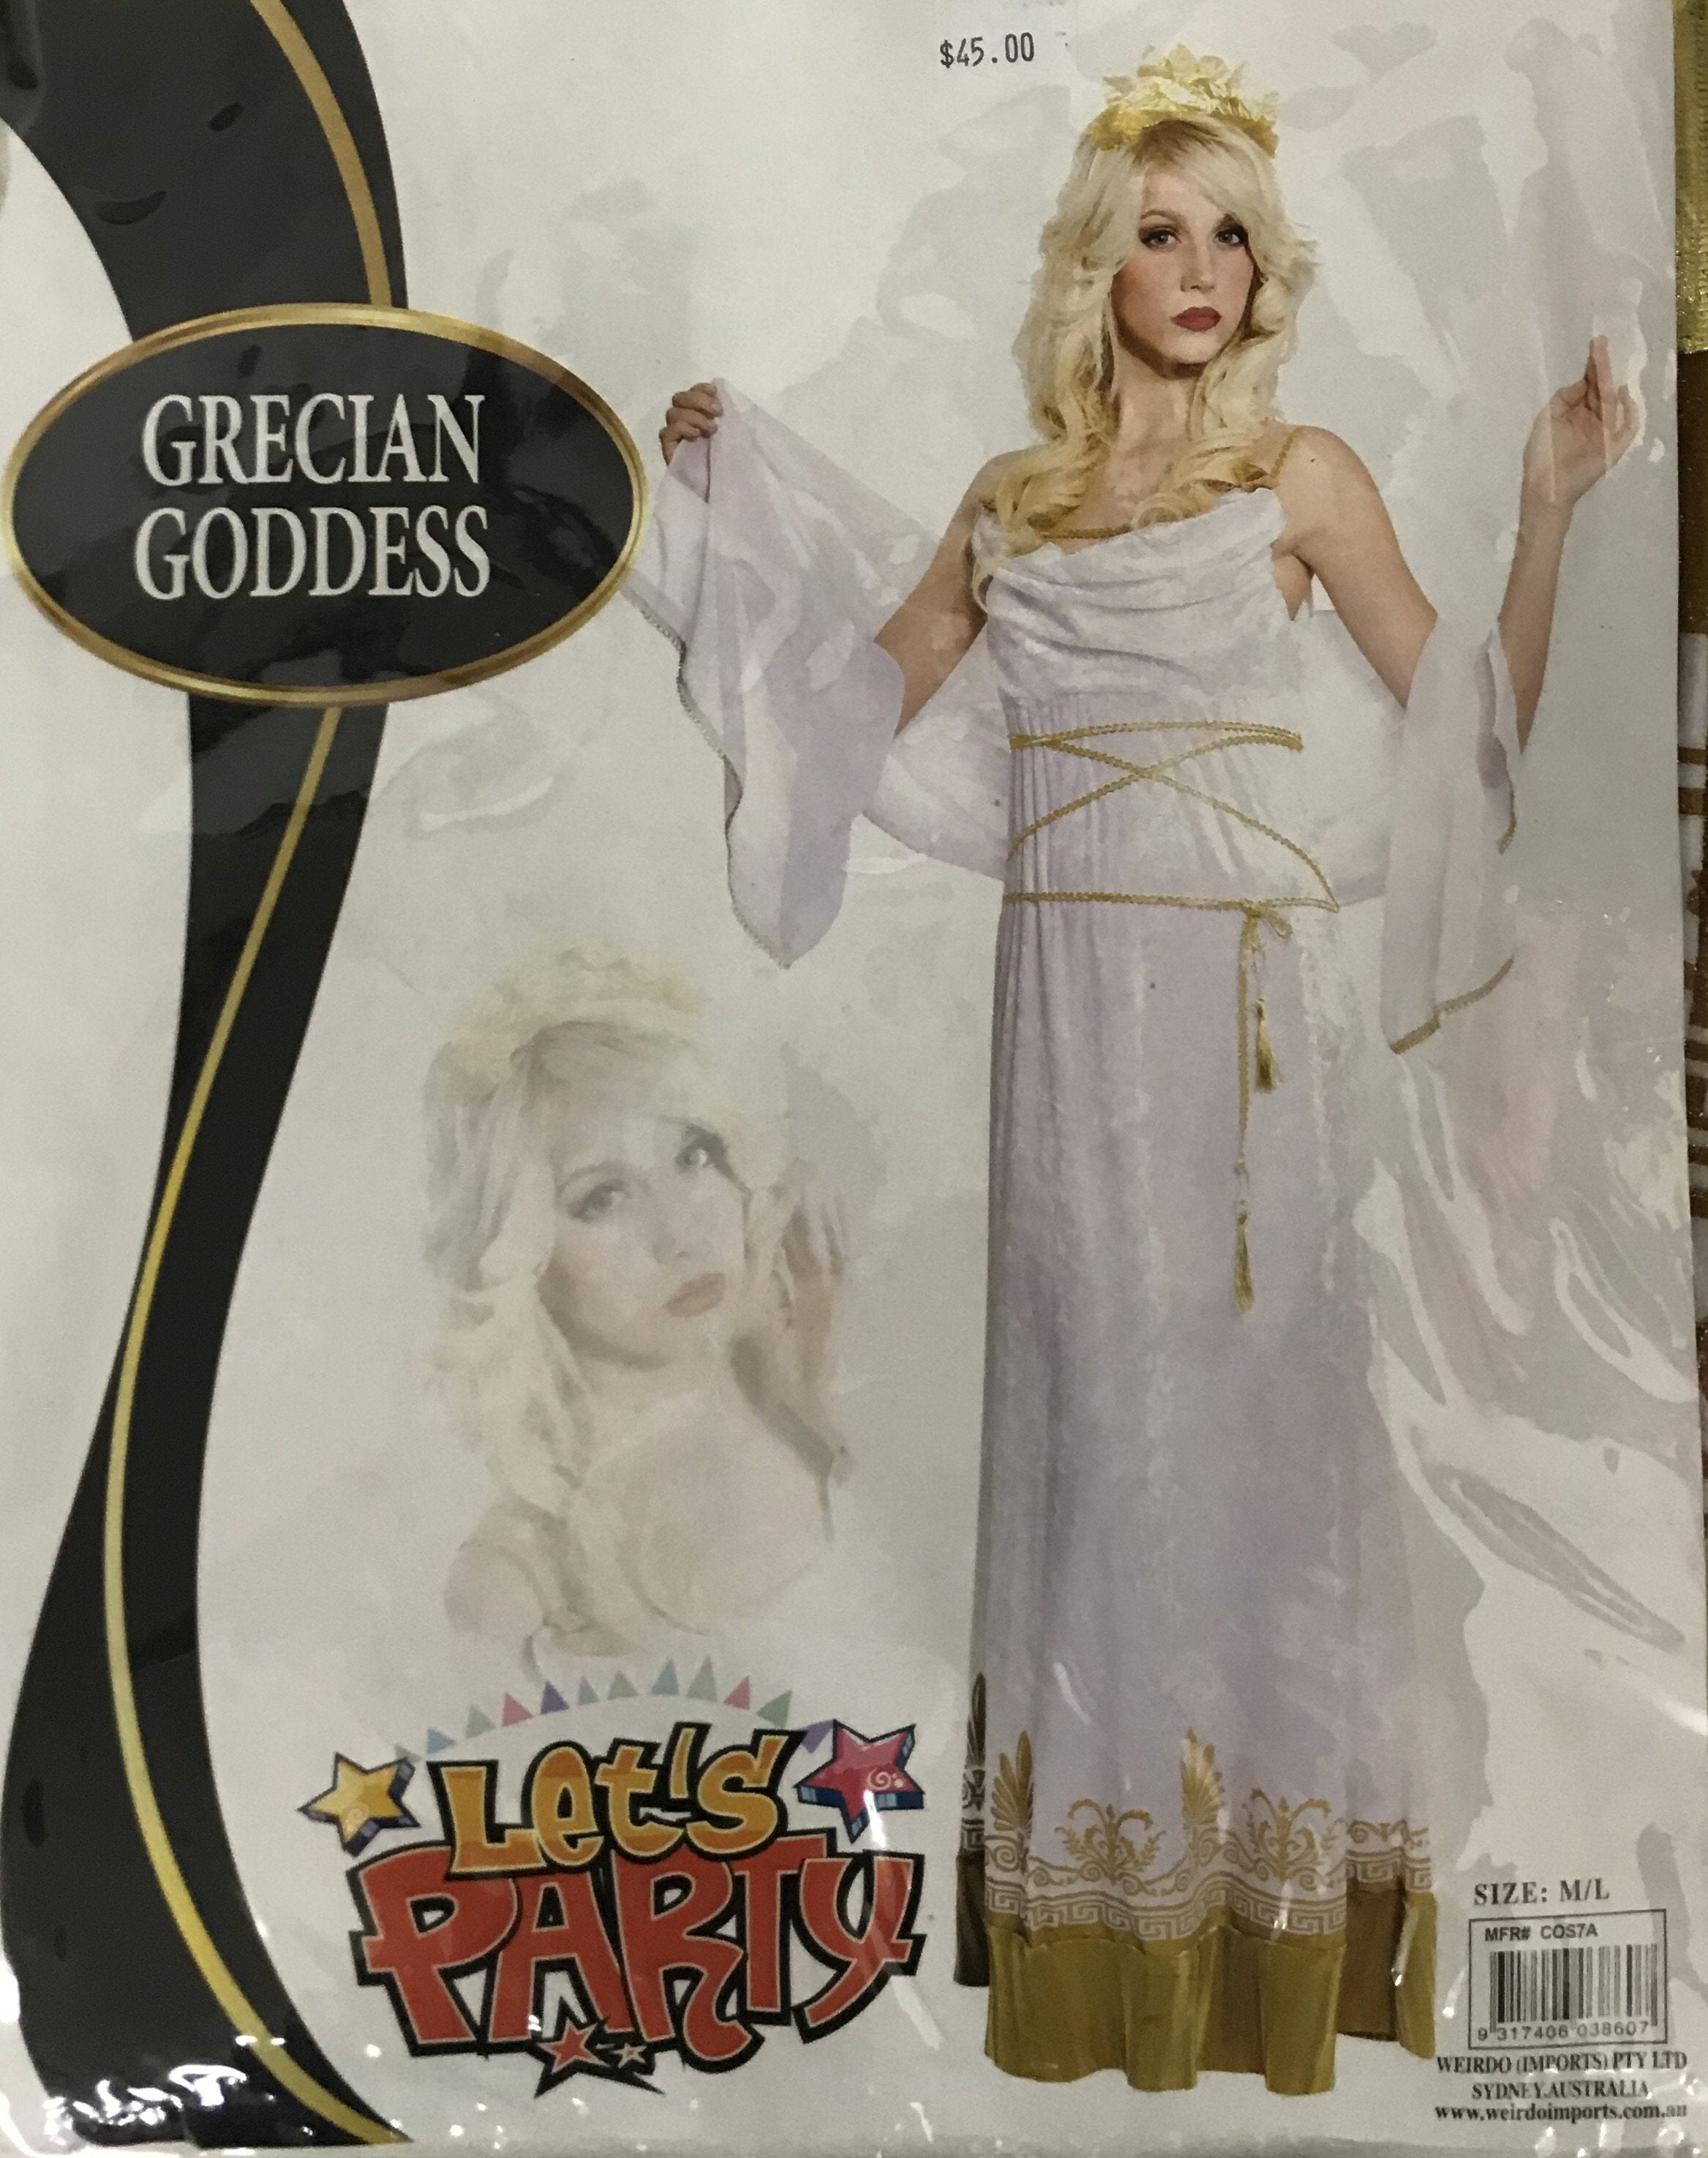 Grecian Goddess - The Costume Company | Fancy Dress Costumes Hire and Purchase Brisbane and Australia